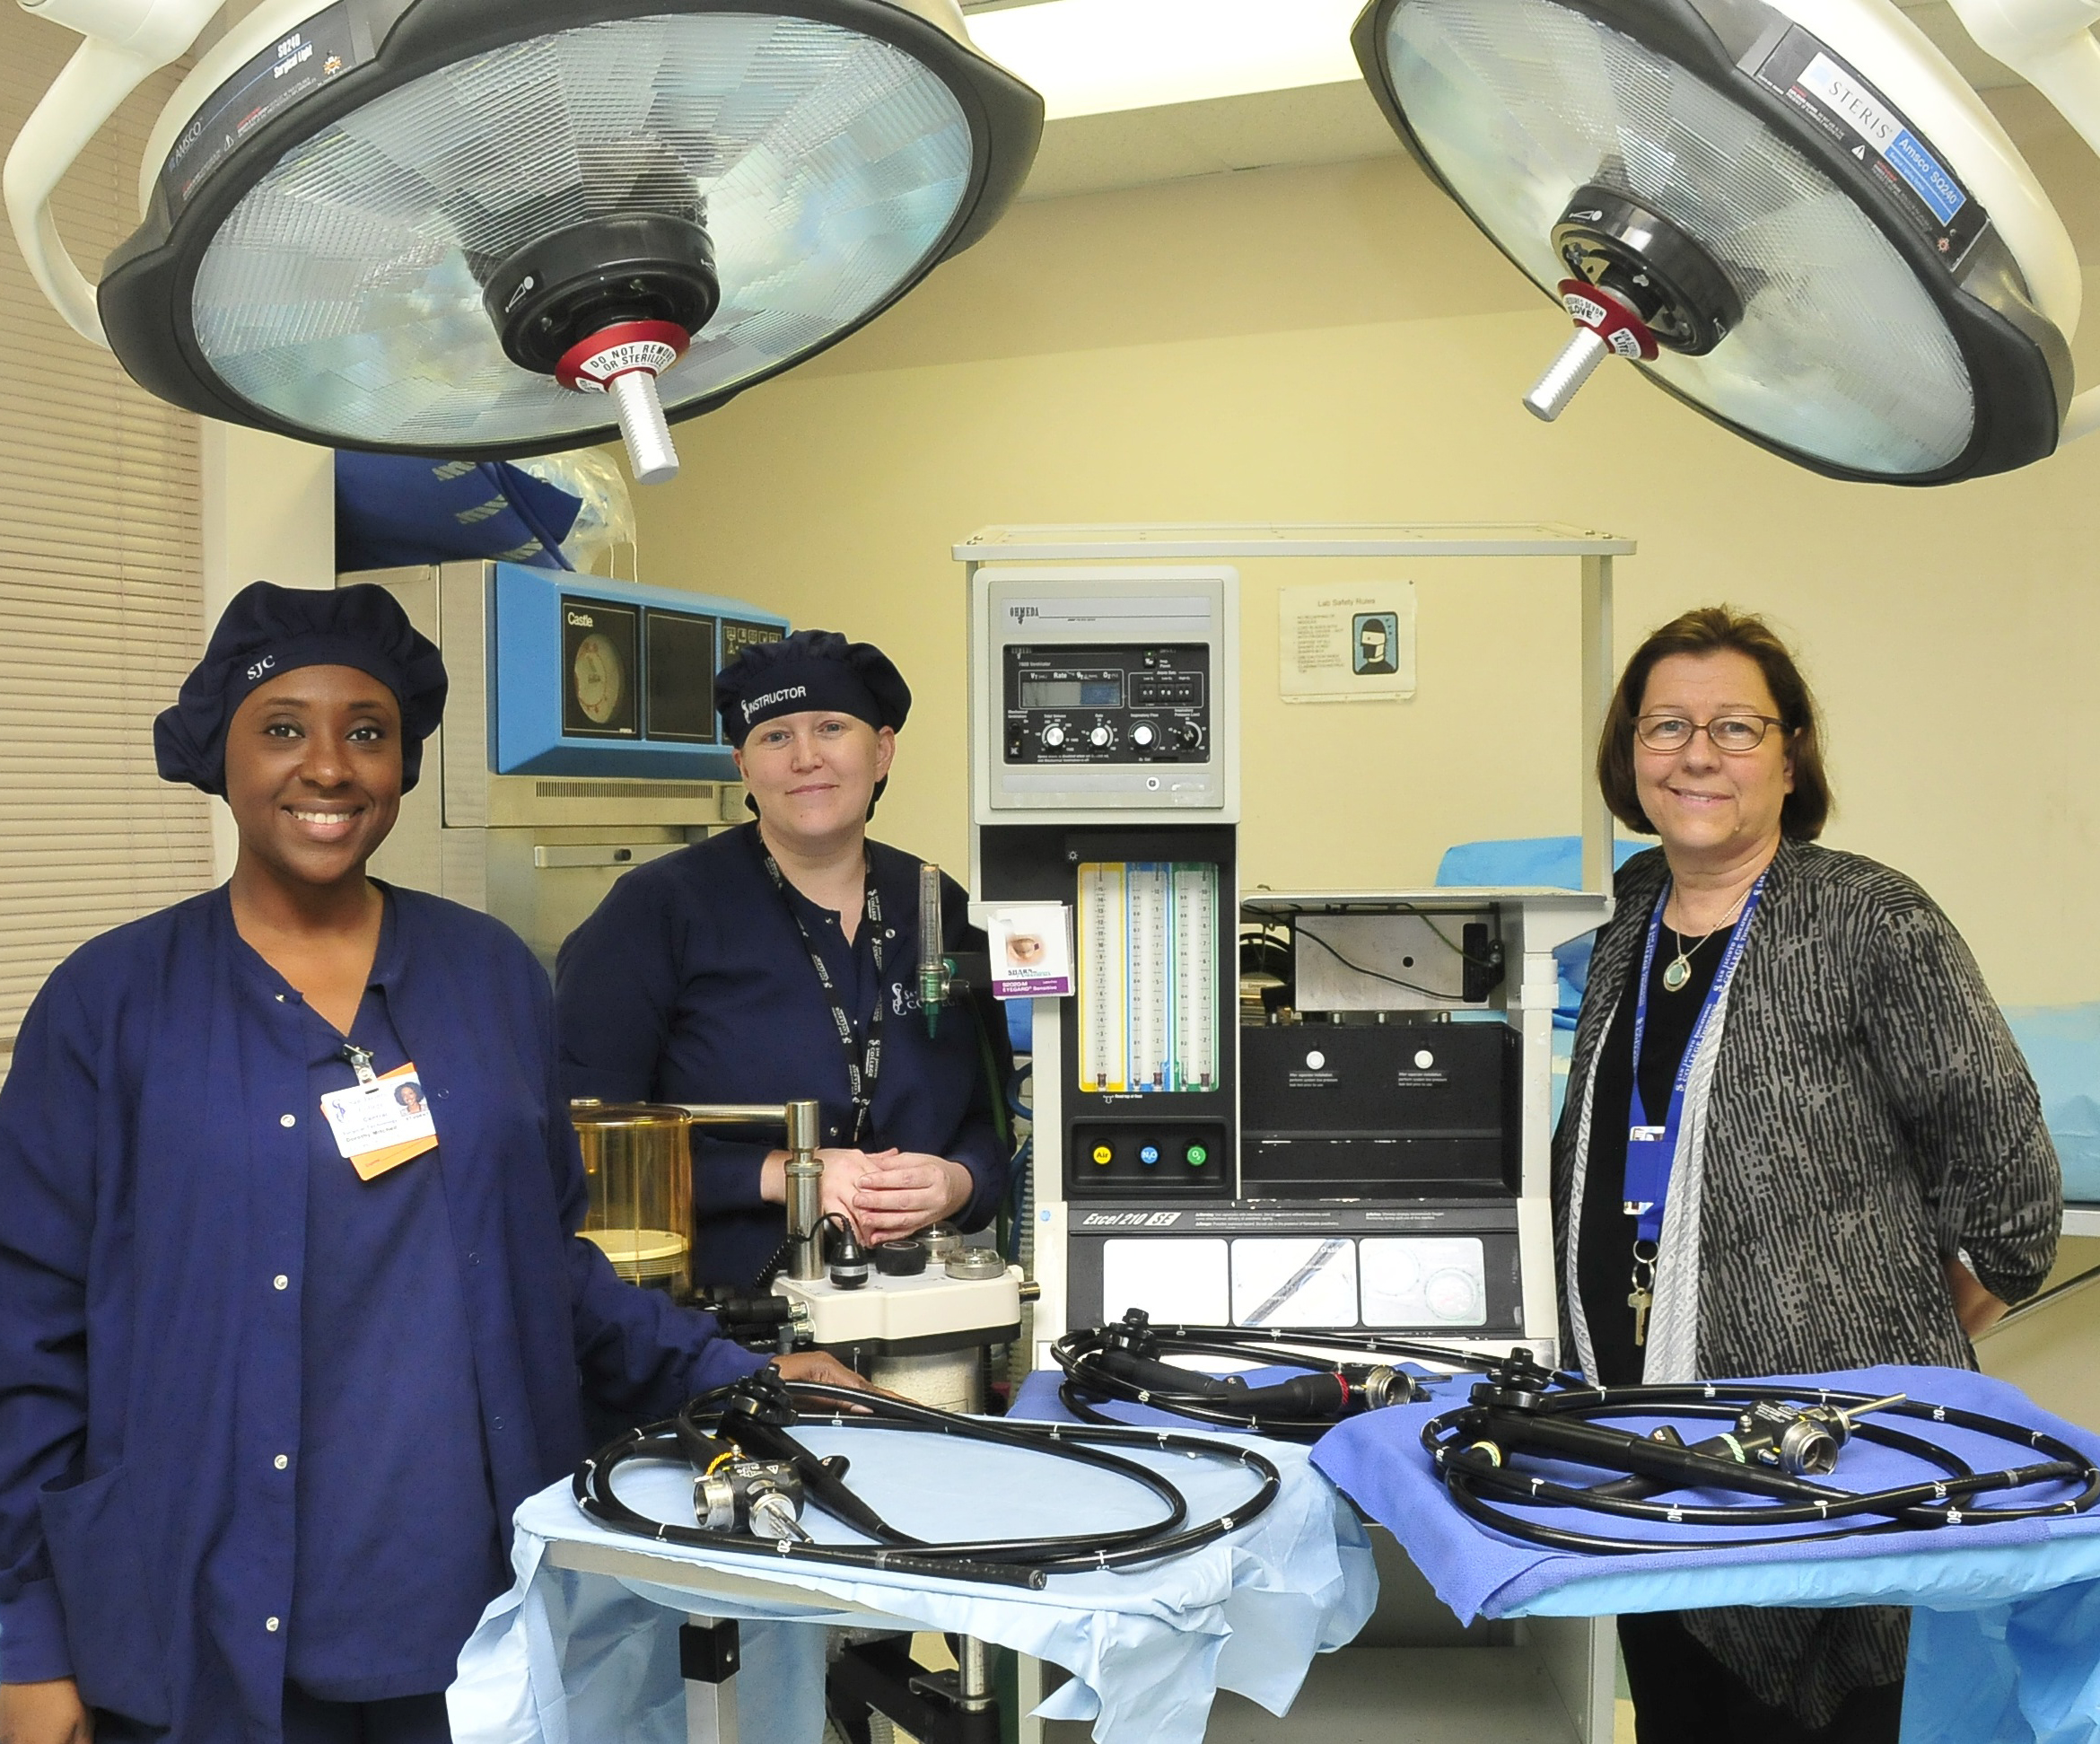 Surgical tech program OR receives much-needed equipment thanks to Bayshore Medical Center